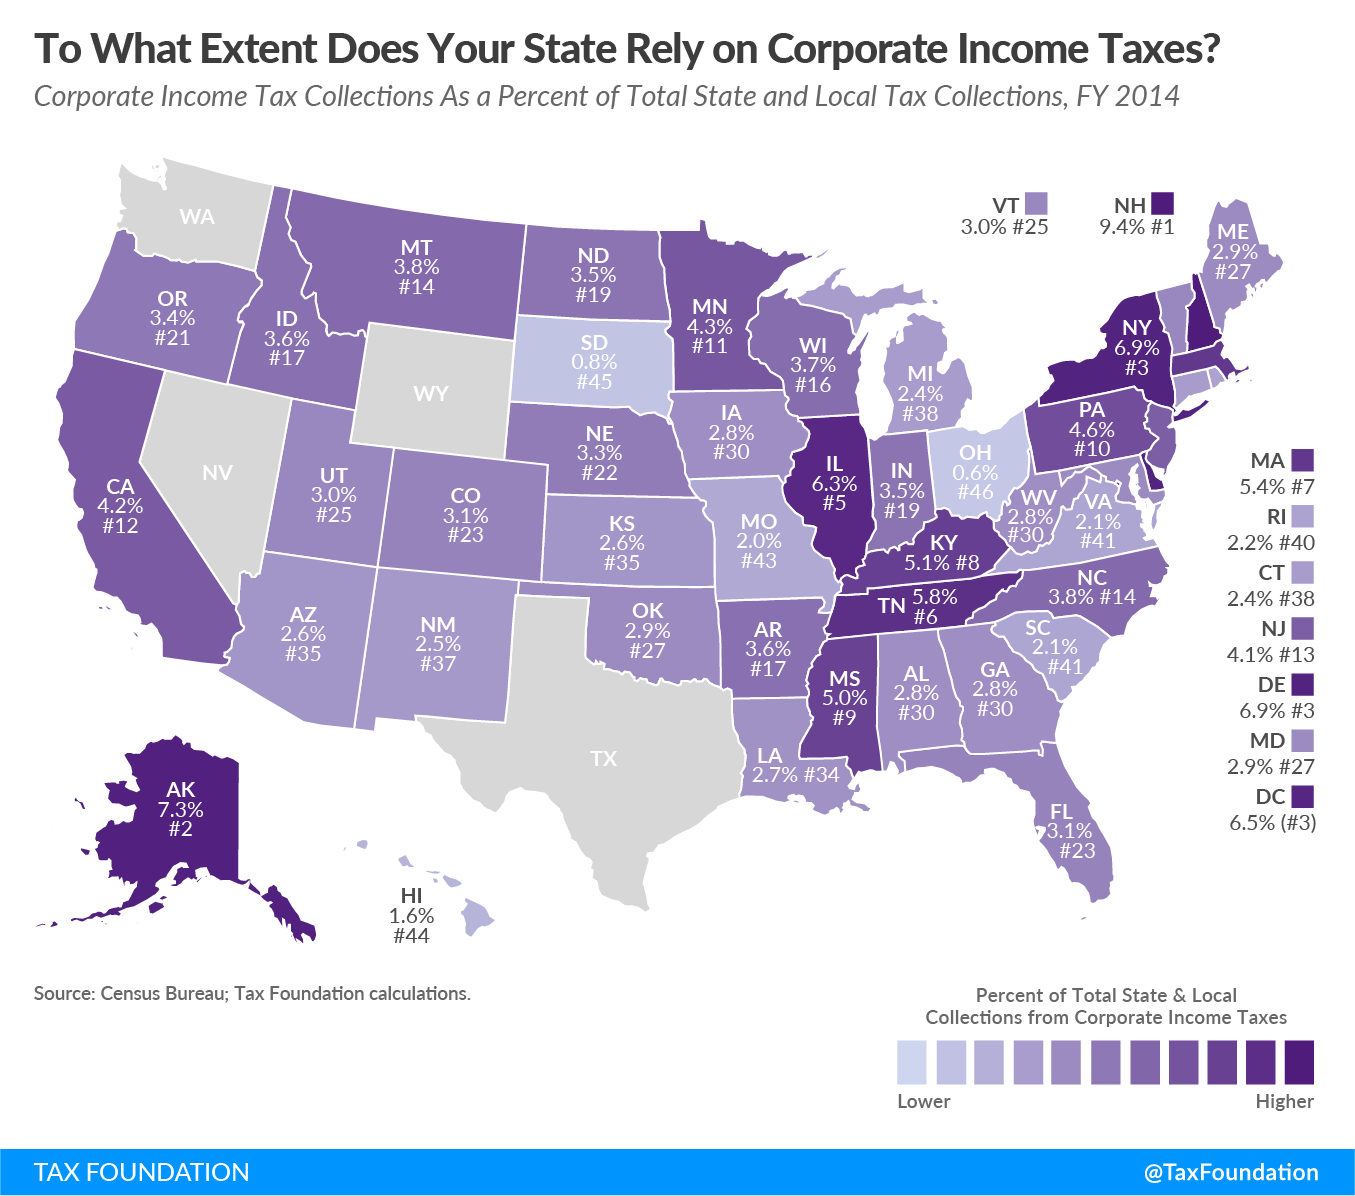 Corporate Income Taxes as a Percentage of State and Local Collections